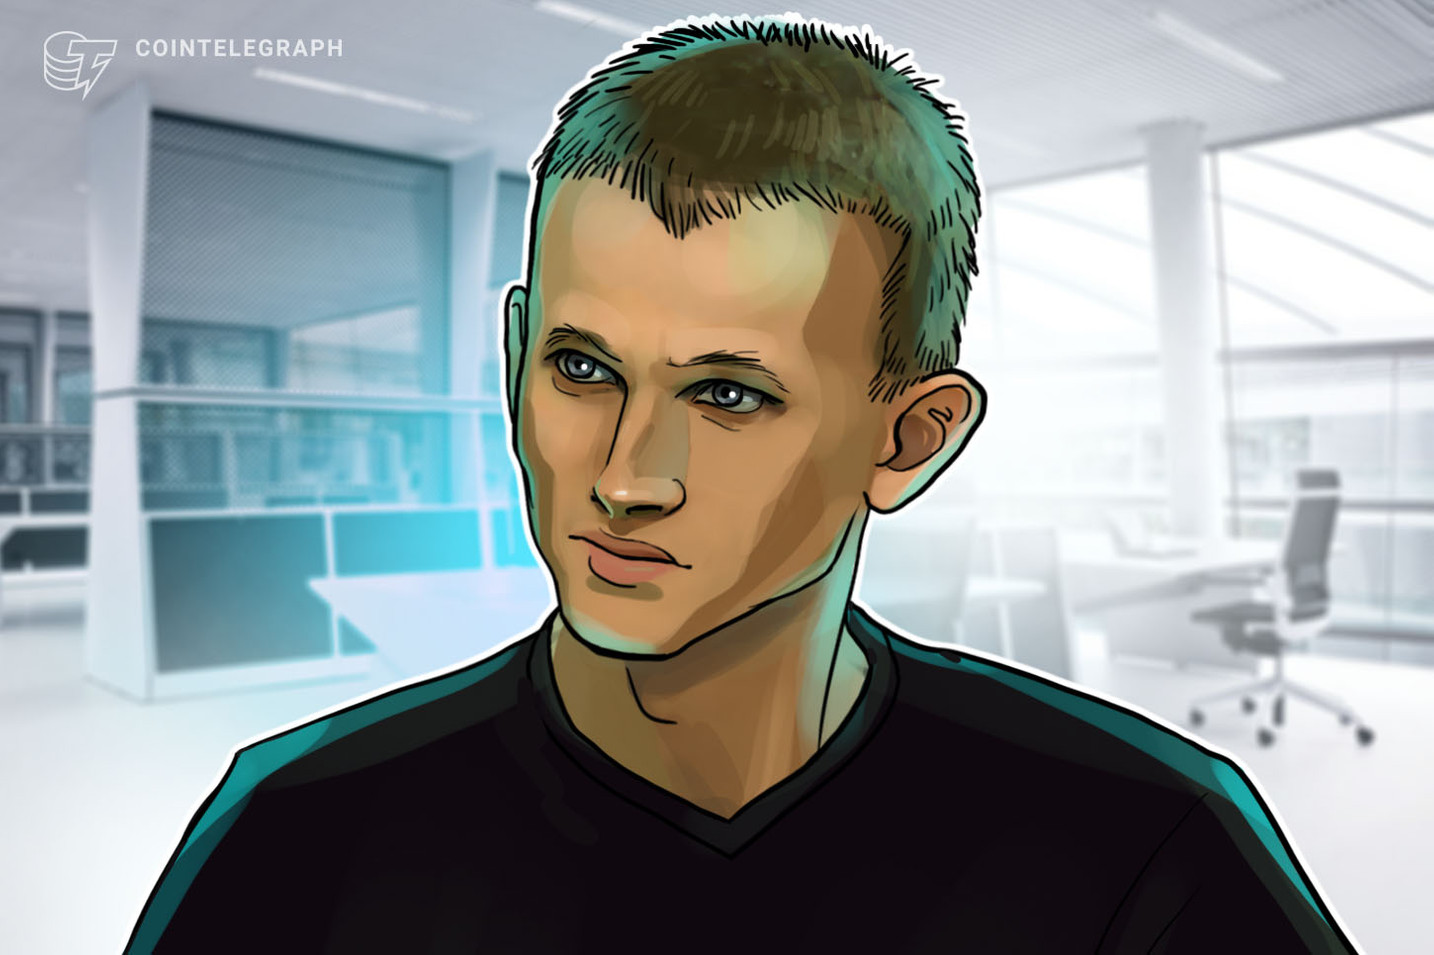 Ethereum co-founder Vitalik Buterin becomes billionaire as Ether hits $3K